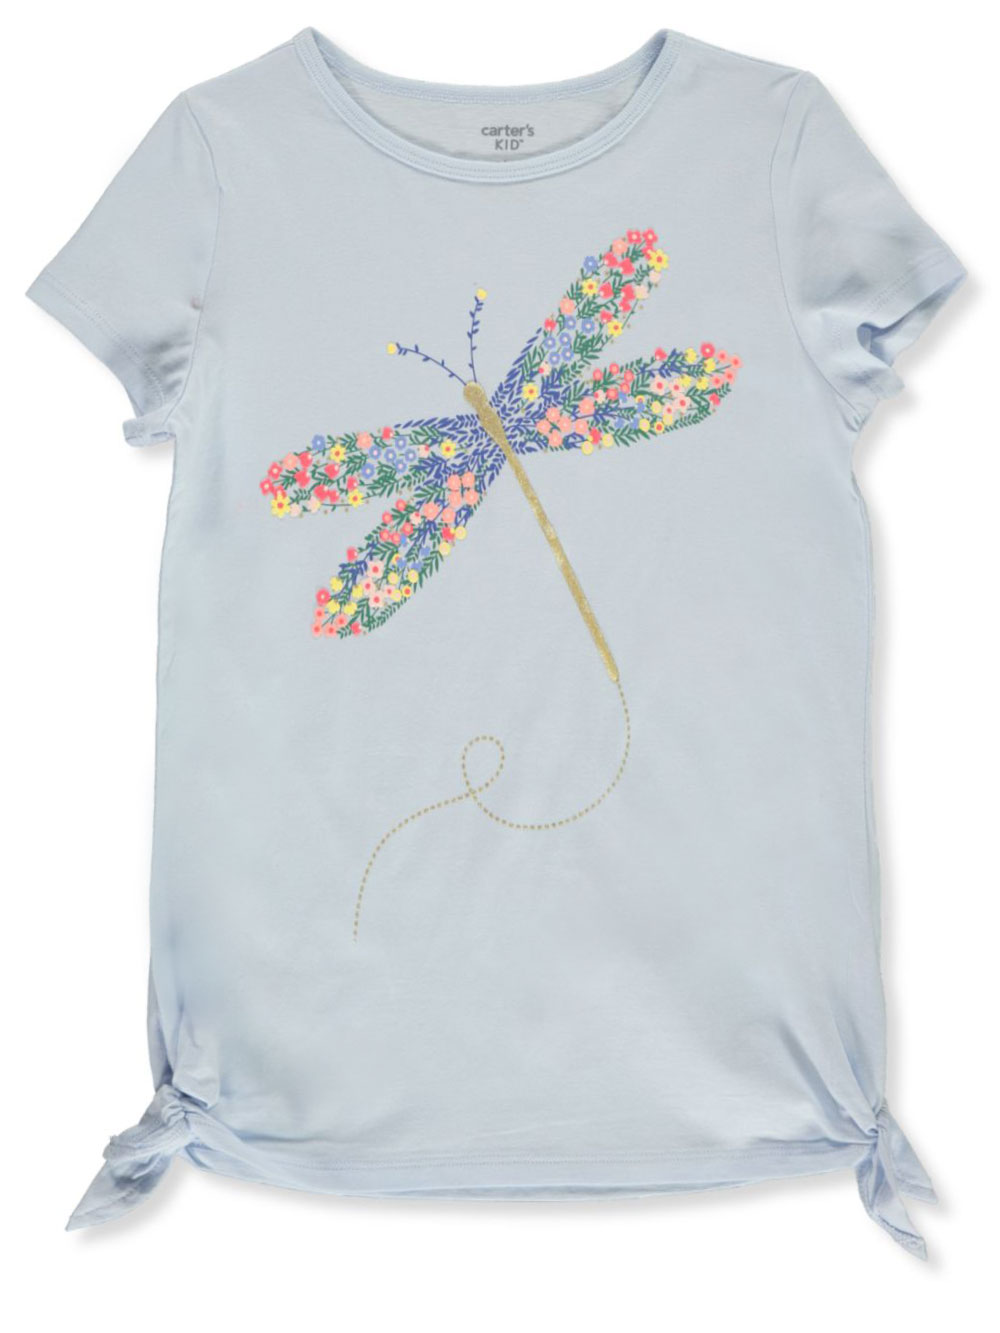 Fashion Tops Floral Glitter Dragonfly Graphic